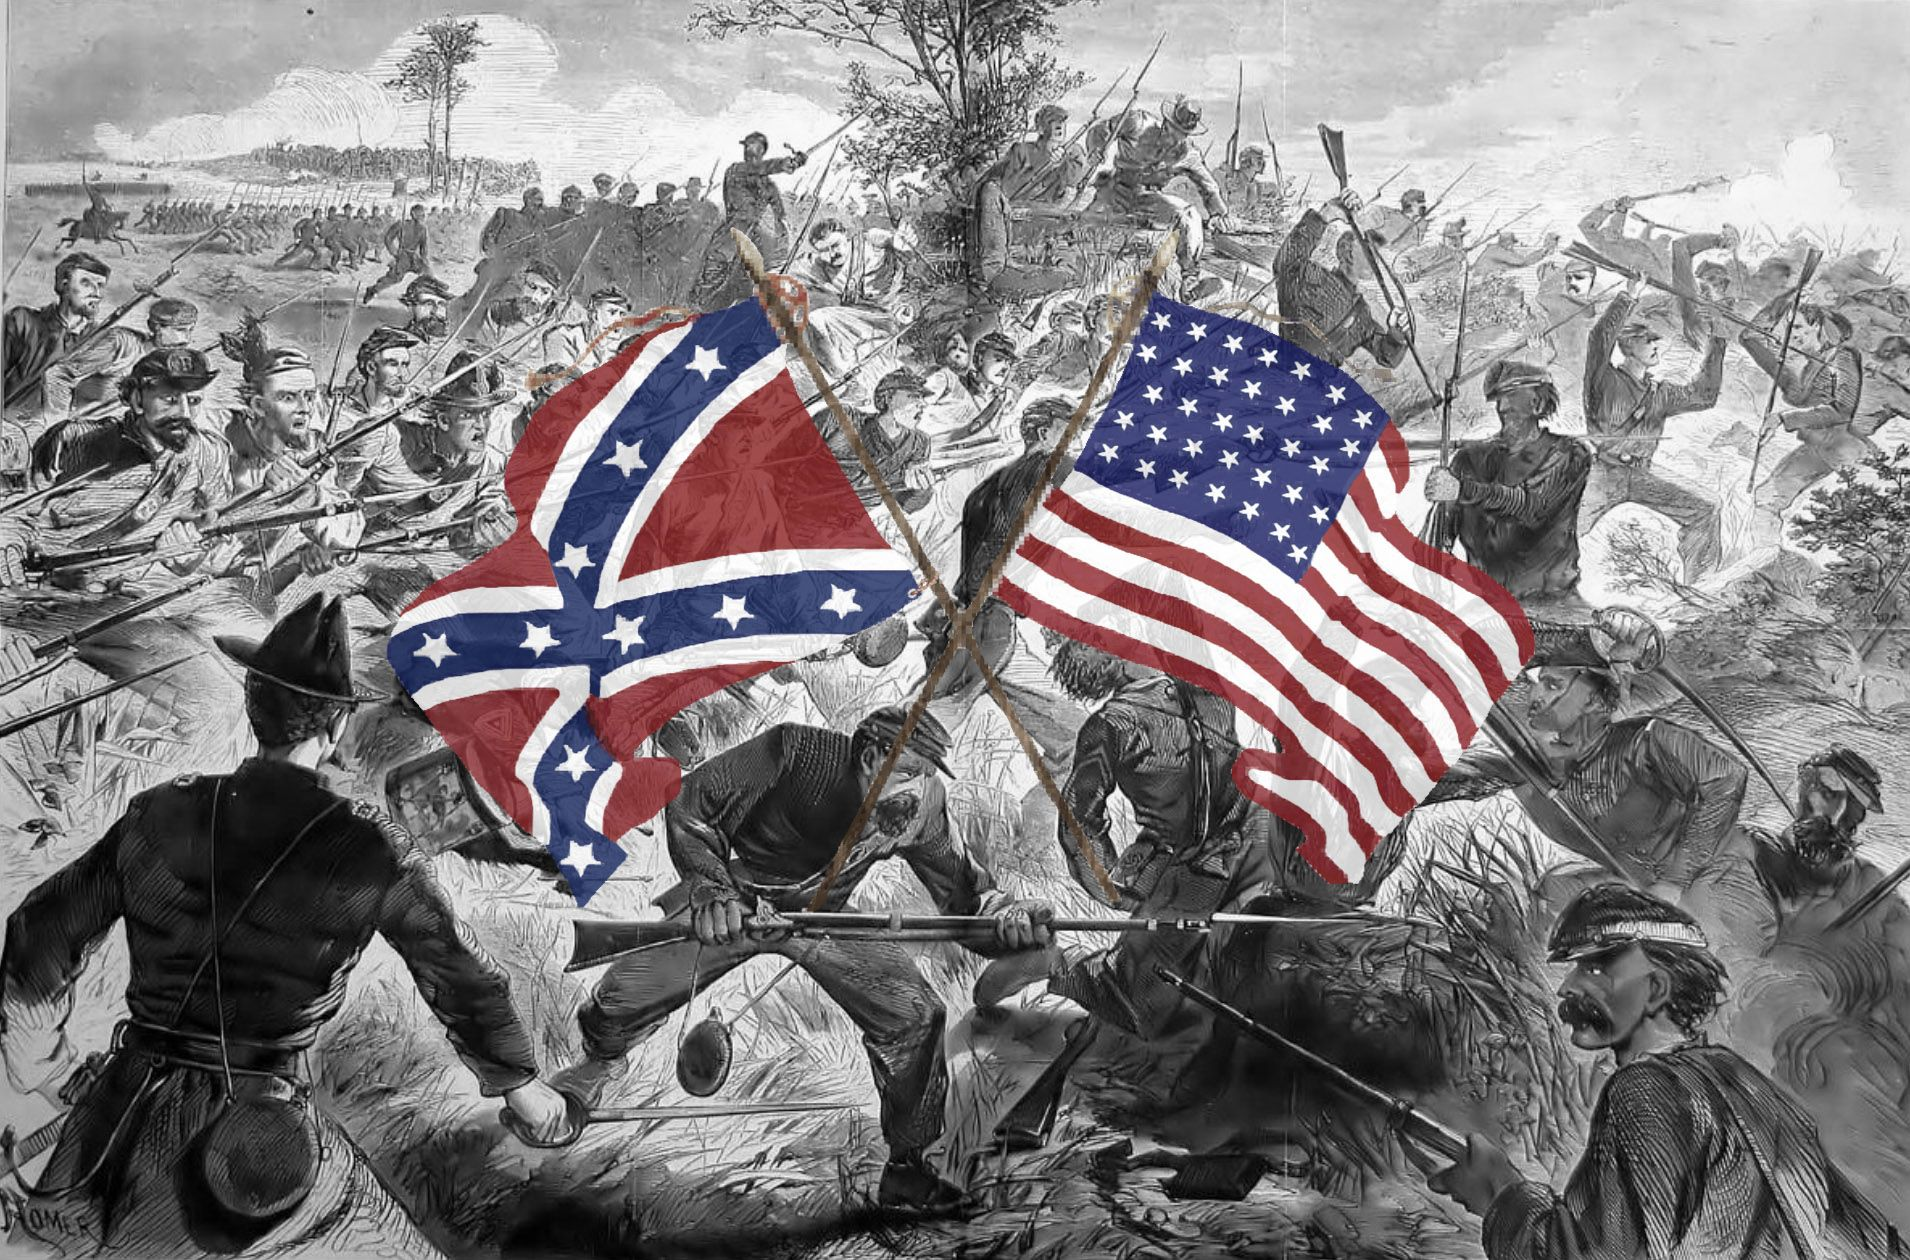 Soldiers fighting civil war battle with colorful images of American and Confederate flags in middle